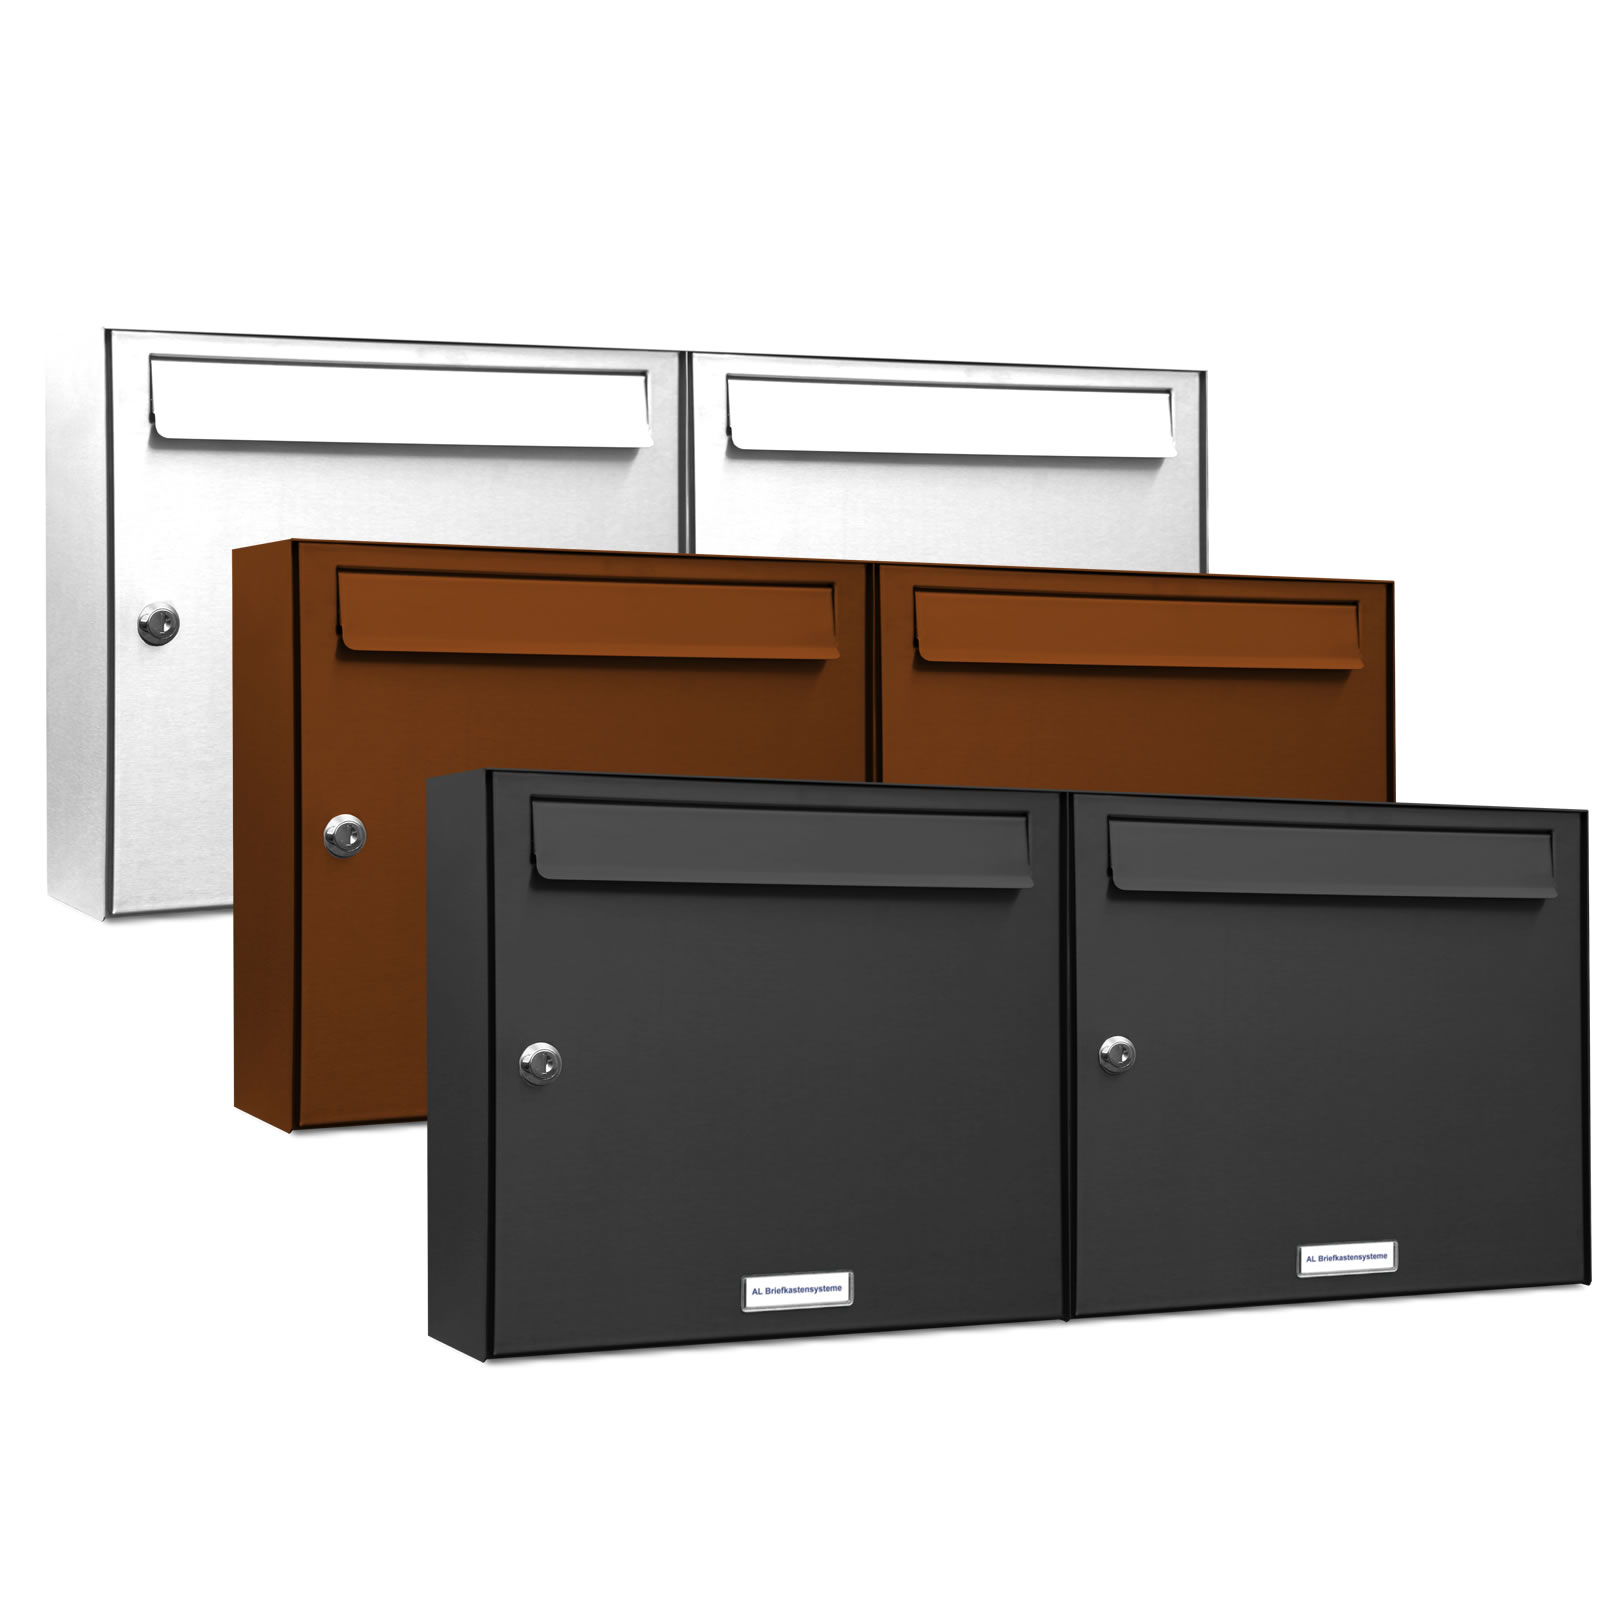 2er 2x1 briefkasten anlage aufputz wandmontage ral farbe. Black Bedroom Furniture Sets. Home Design Ideas